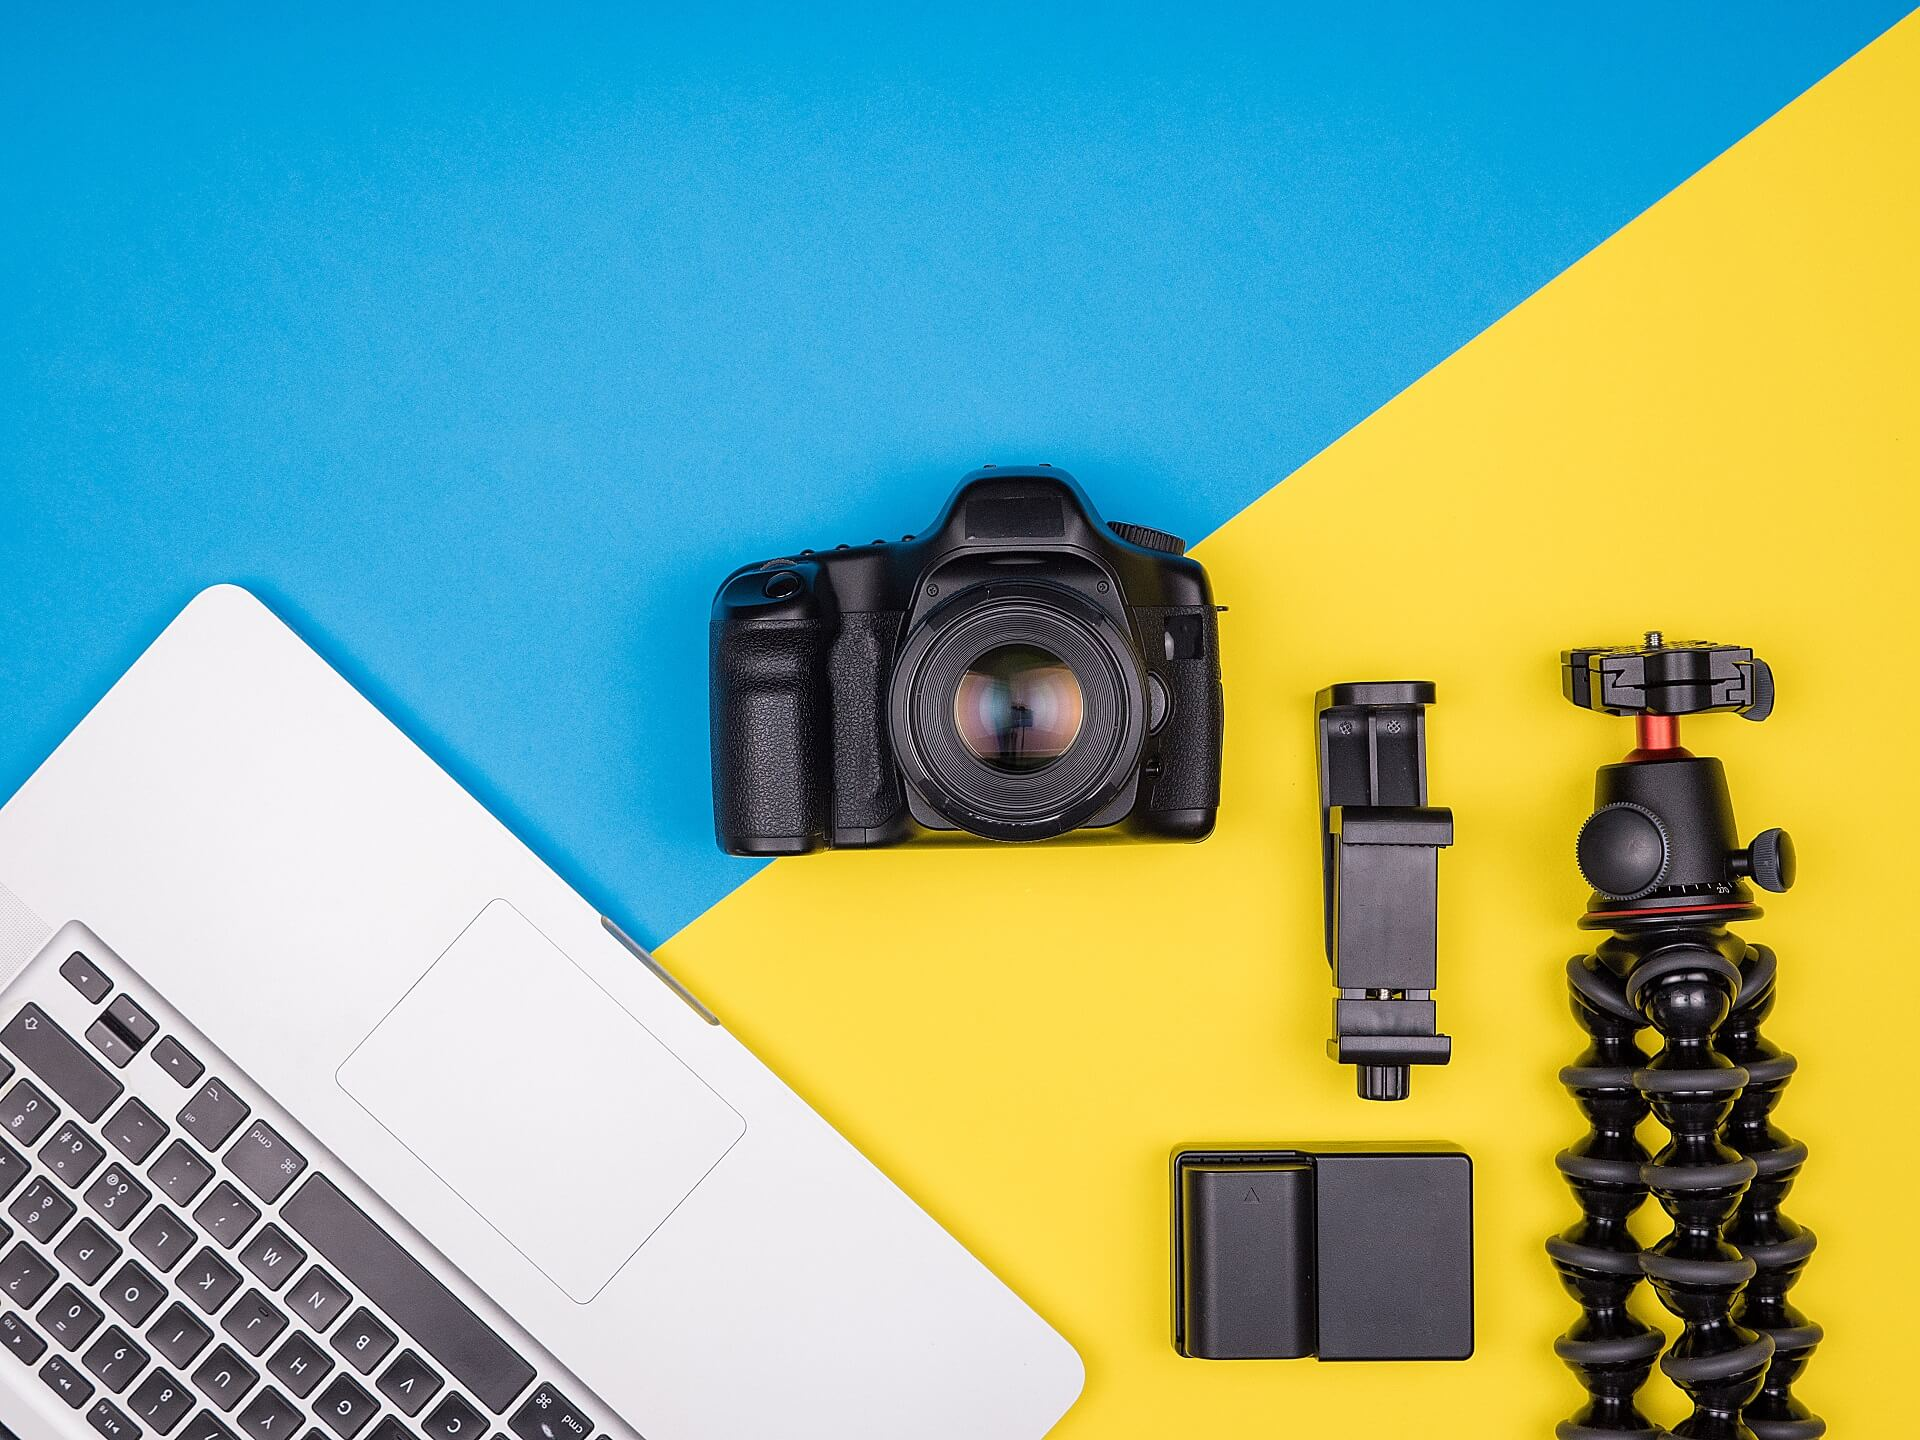 Dslr camera with accessories next to a laptop